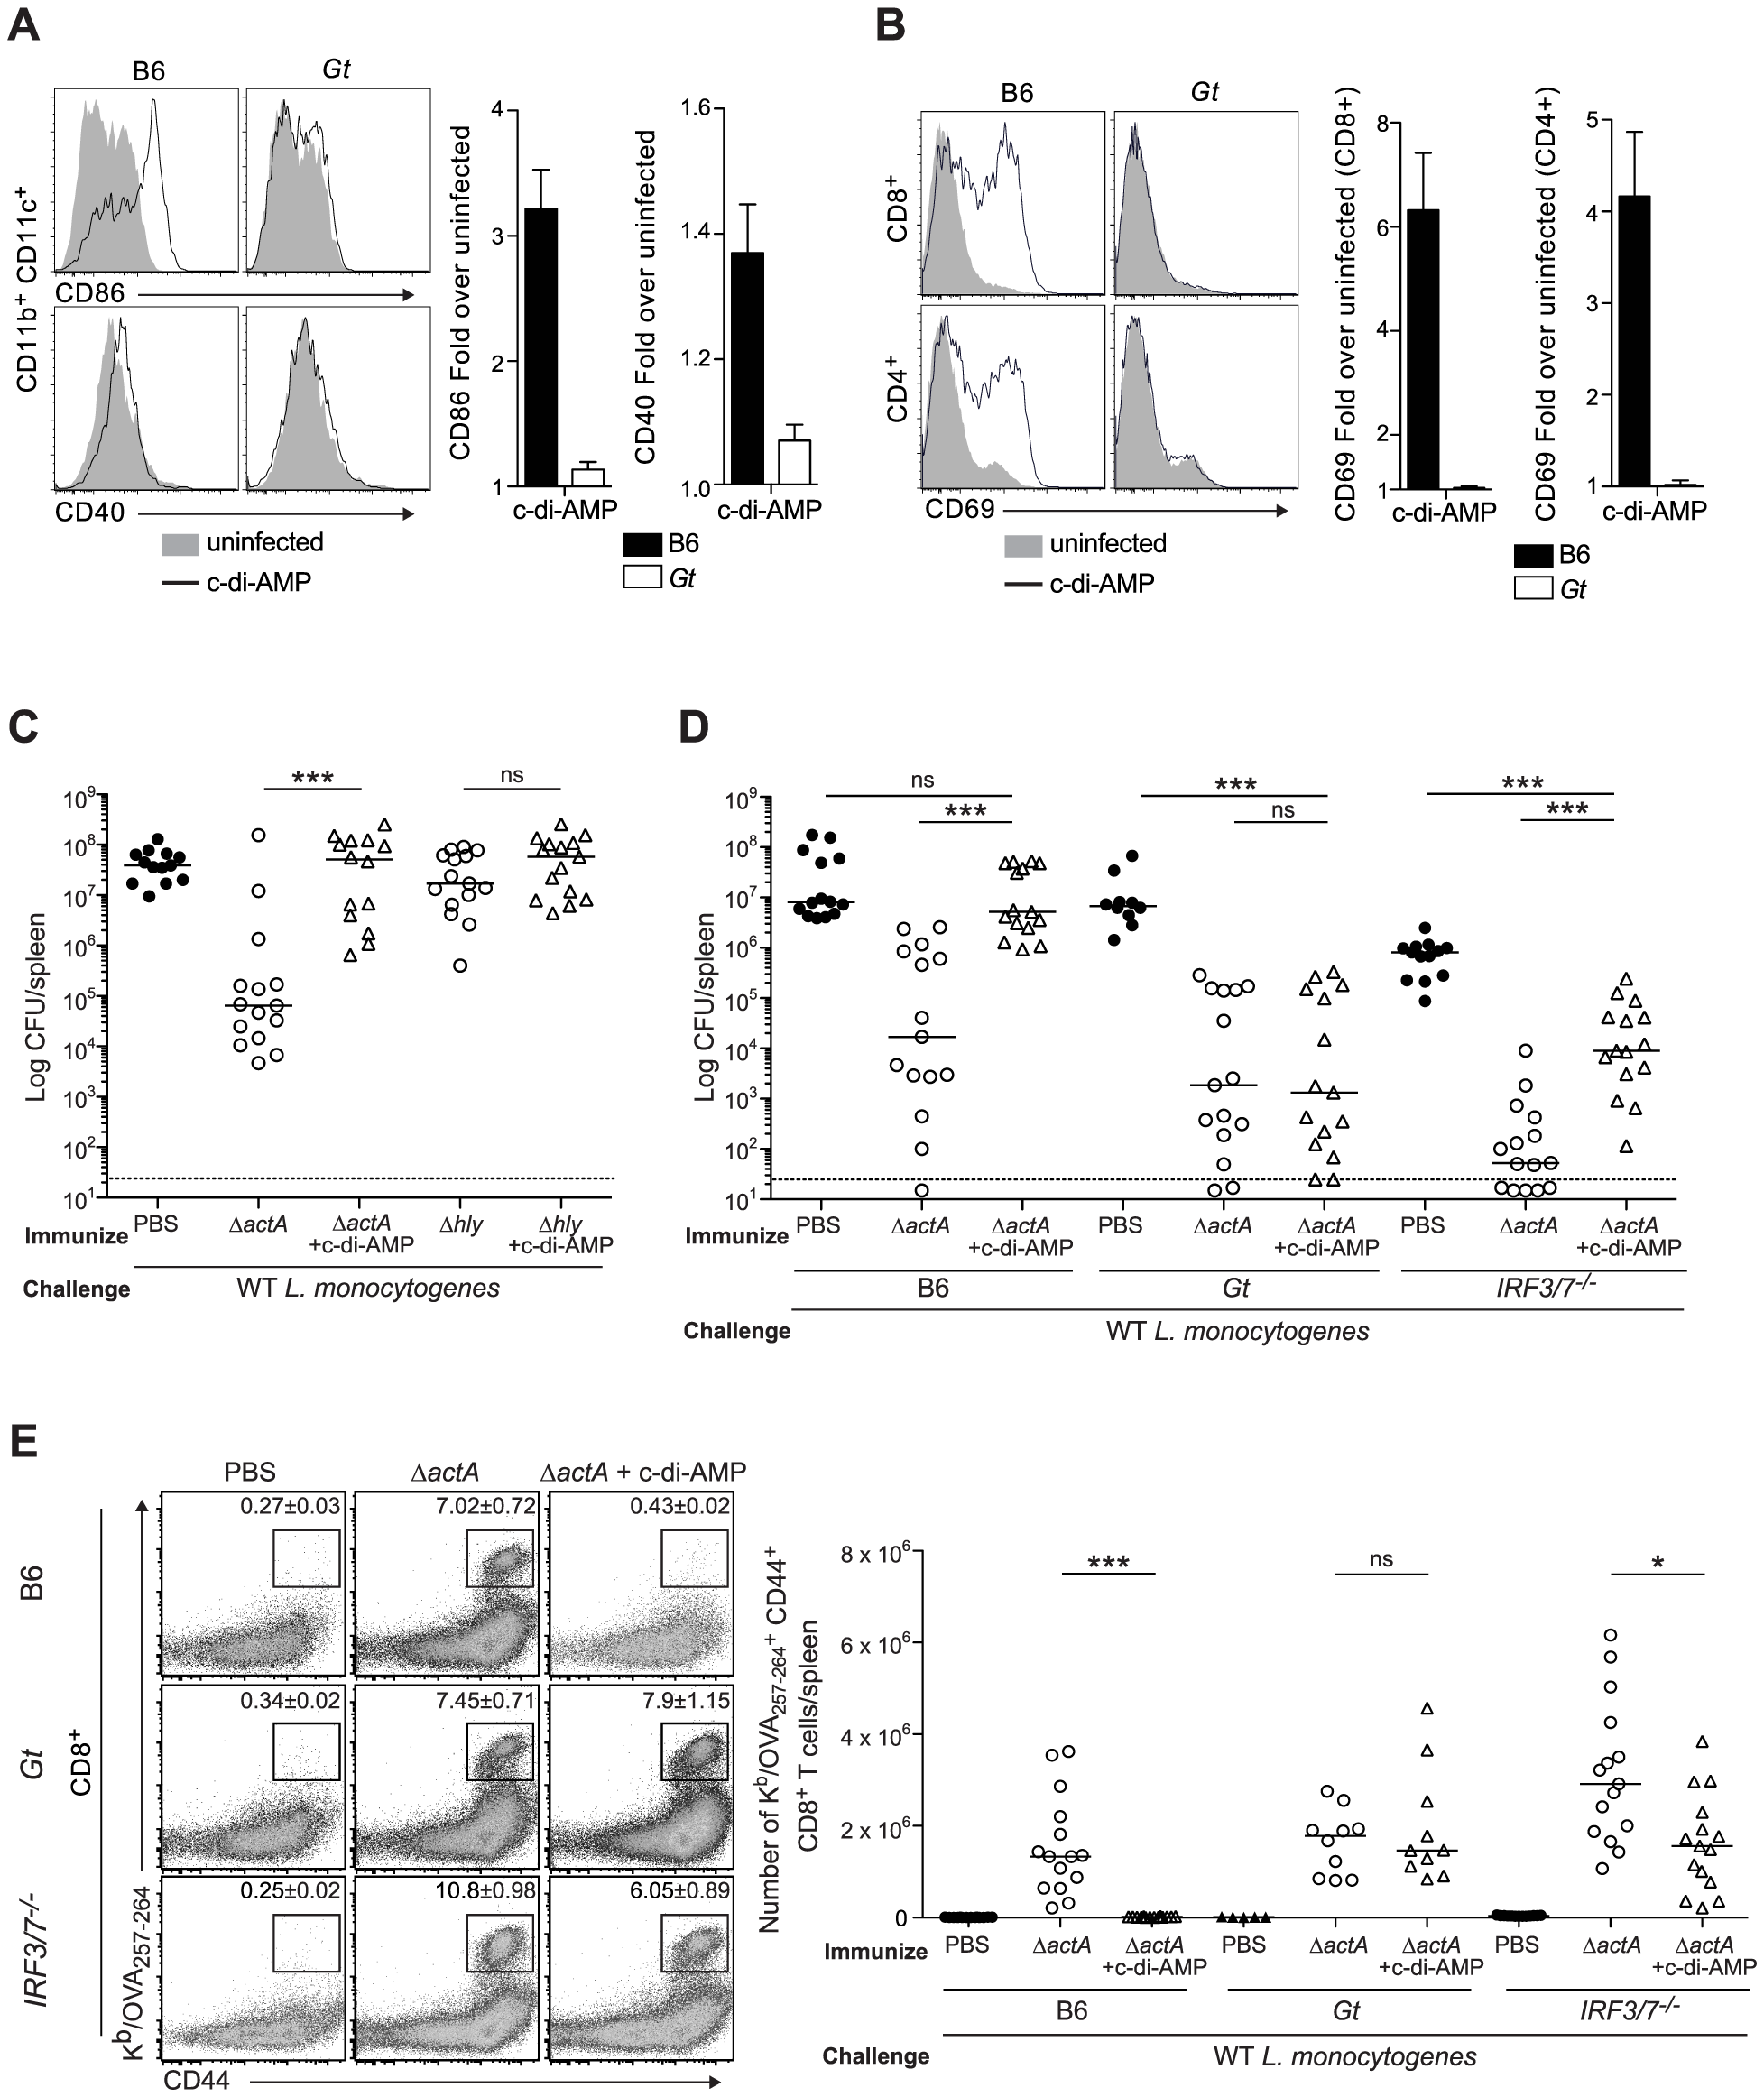 Administration of c-di-AMP during immunization inhibits CD8<sup>+</sup> T cell expansion and protective immunity upon <i>L. monocytogenes</i> reinfection.